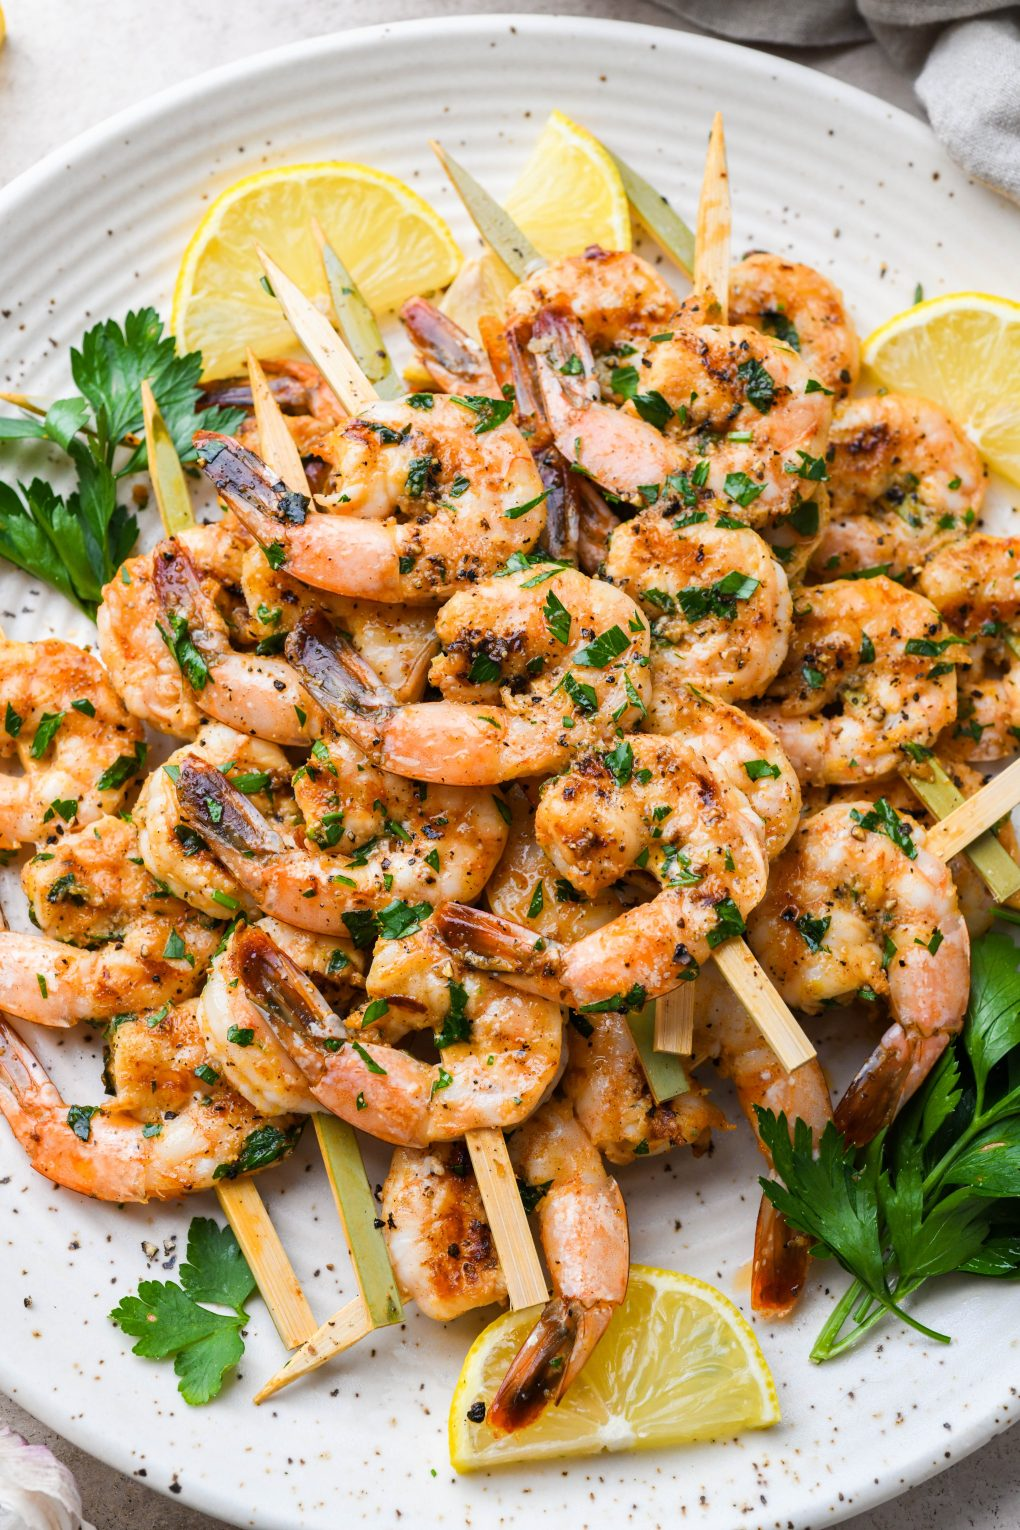 Overhead image of grilled shrimp on wooden skewers. On a light colored speckled plate topped with chopped parsley and next to some lemon wedges.